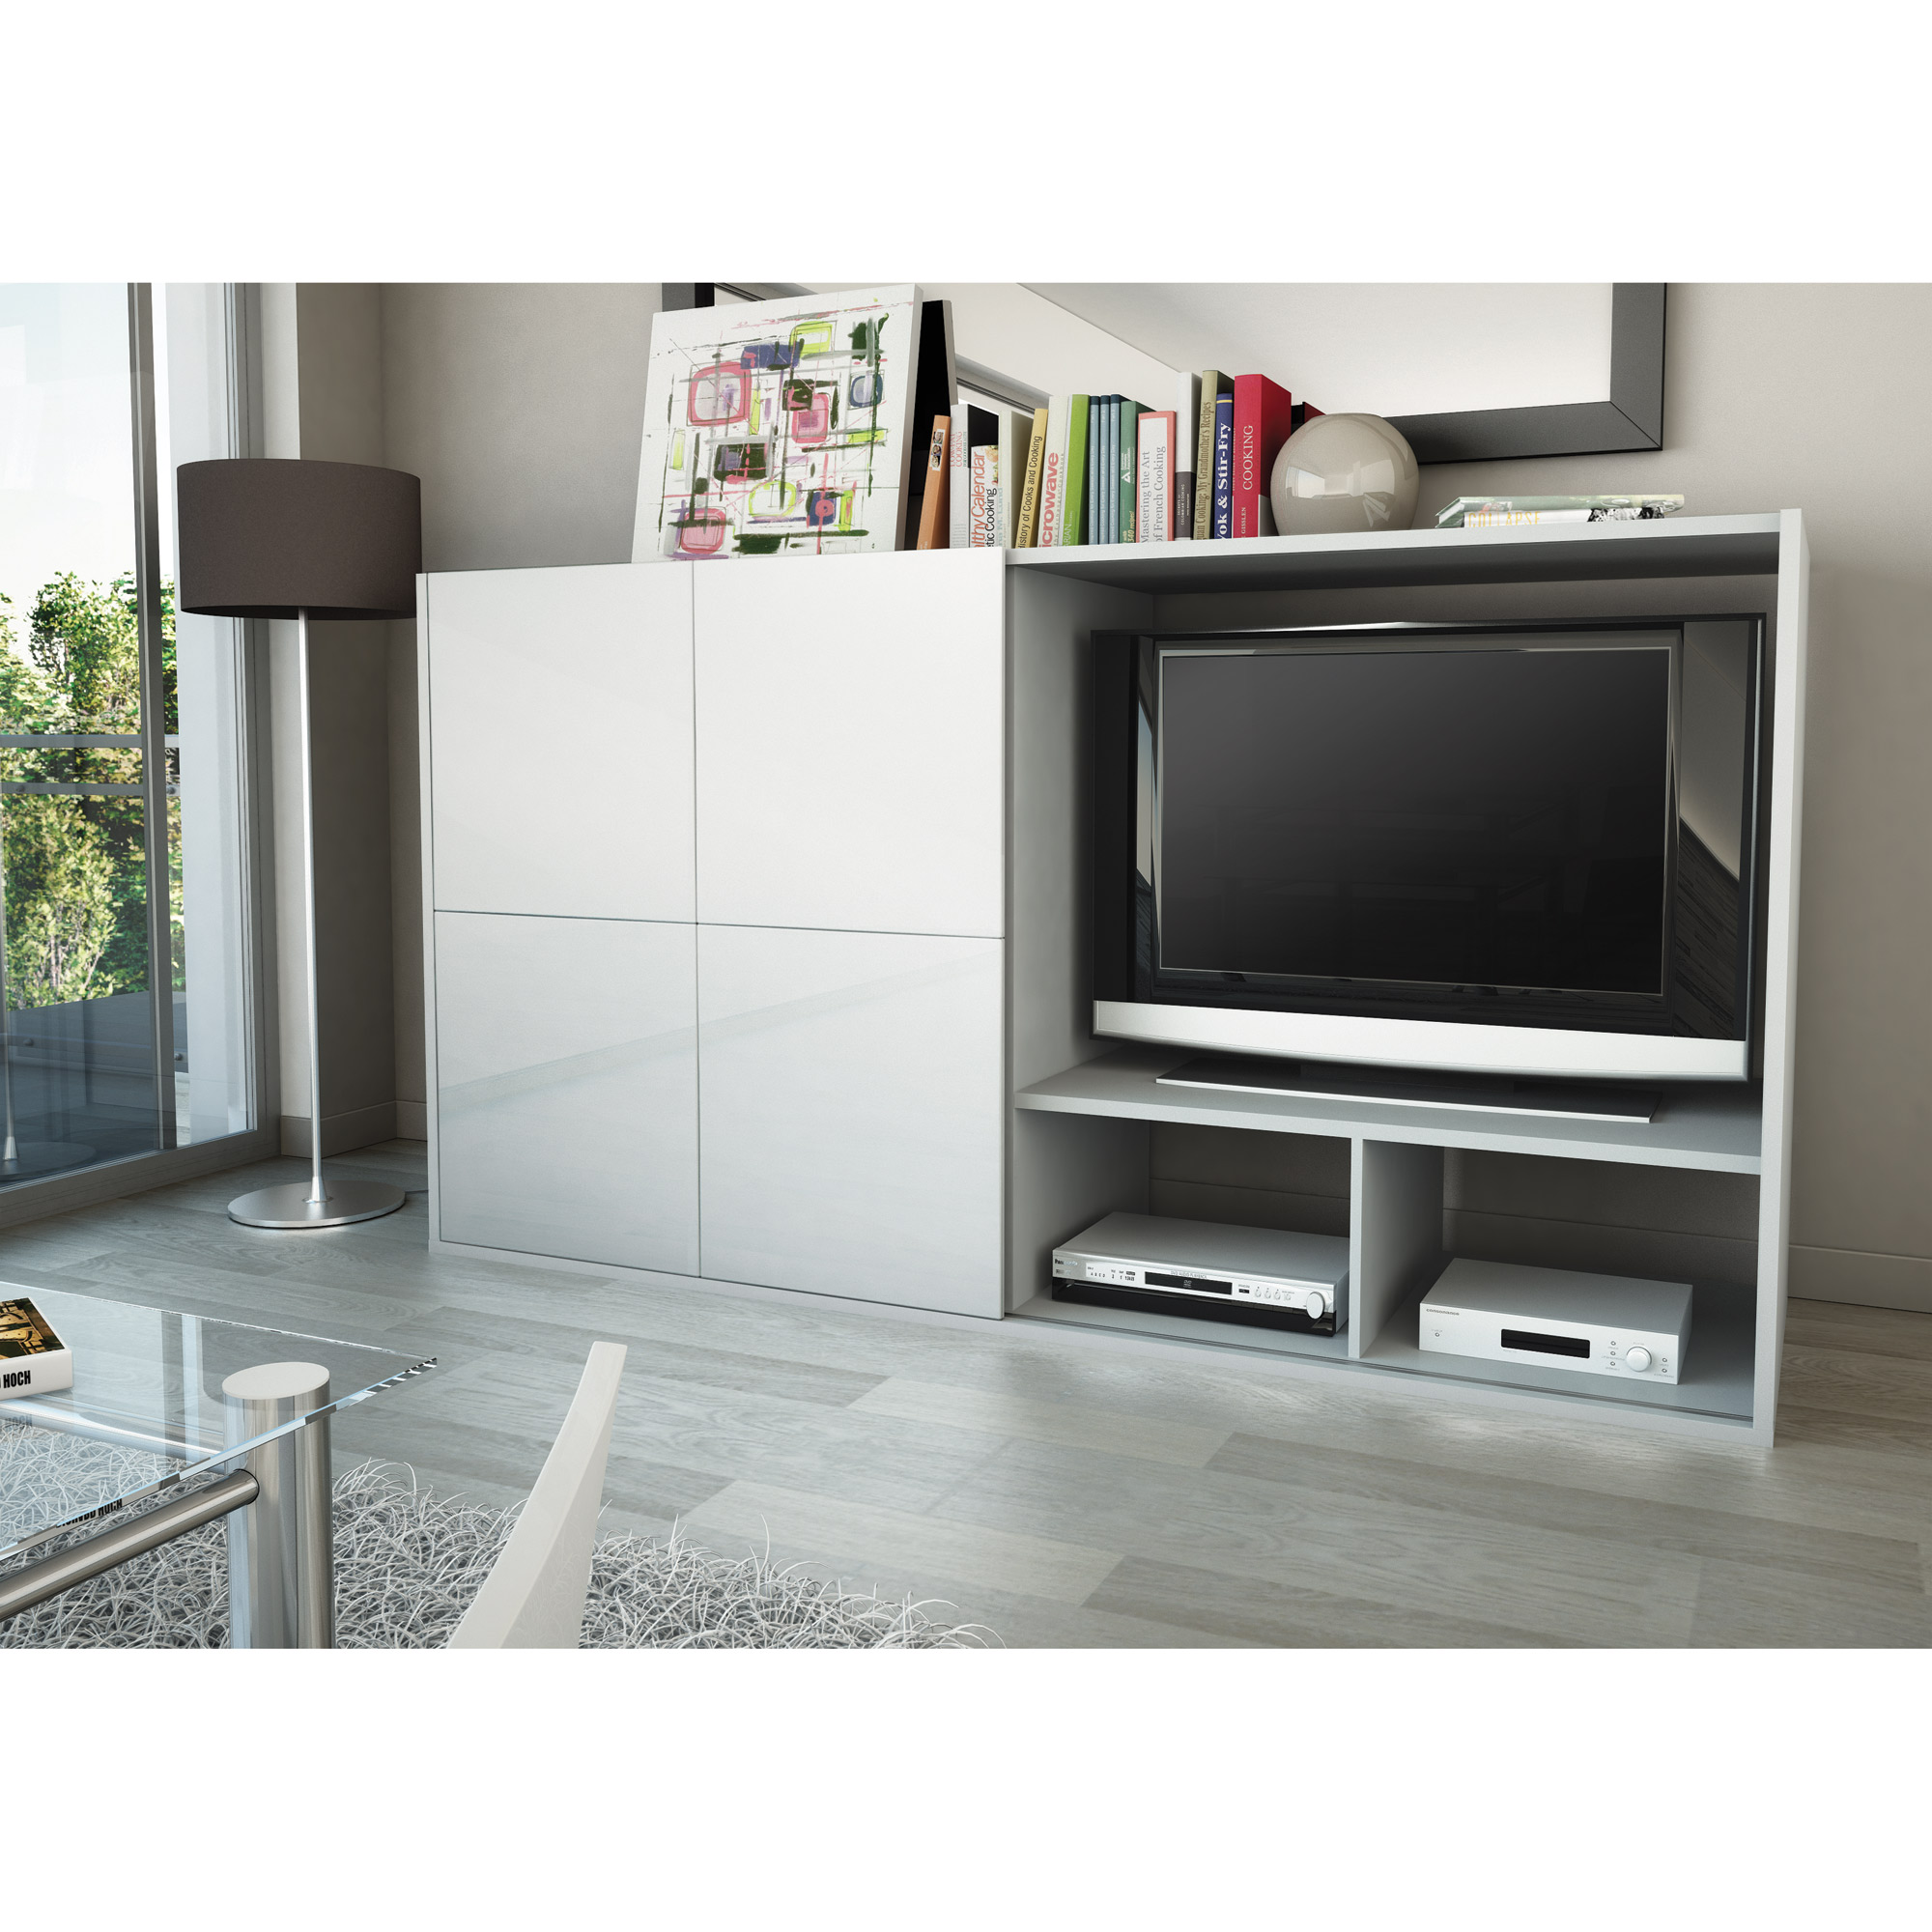 stunning meuble tv cache ideas. Black Bedroom Furniture Sets. Home Design Ideas